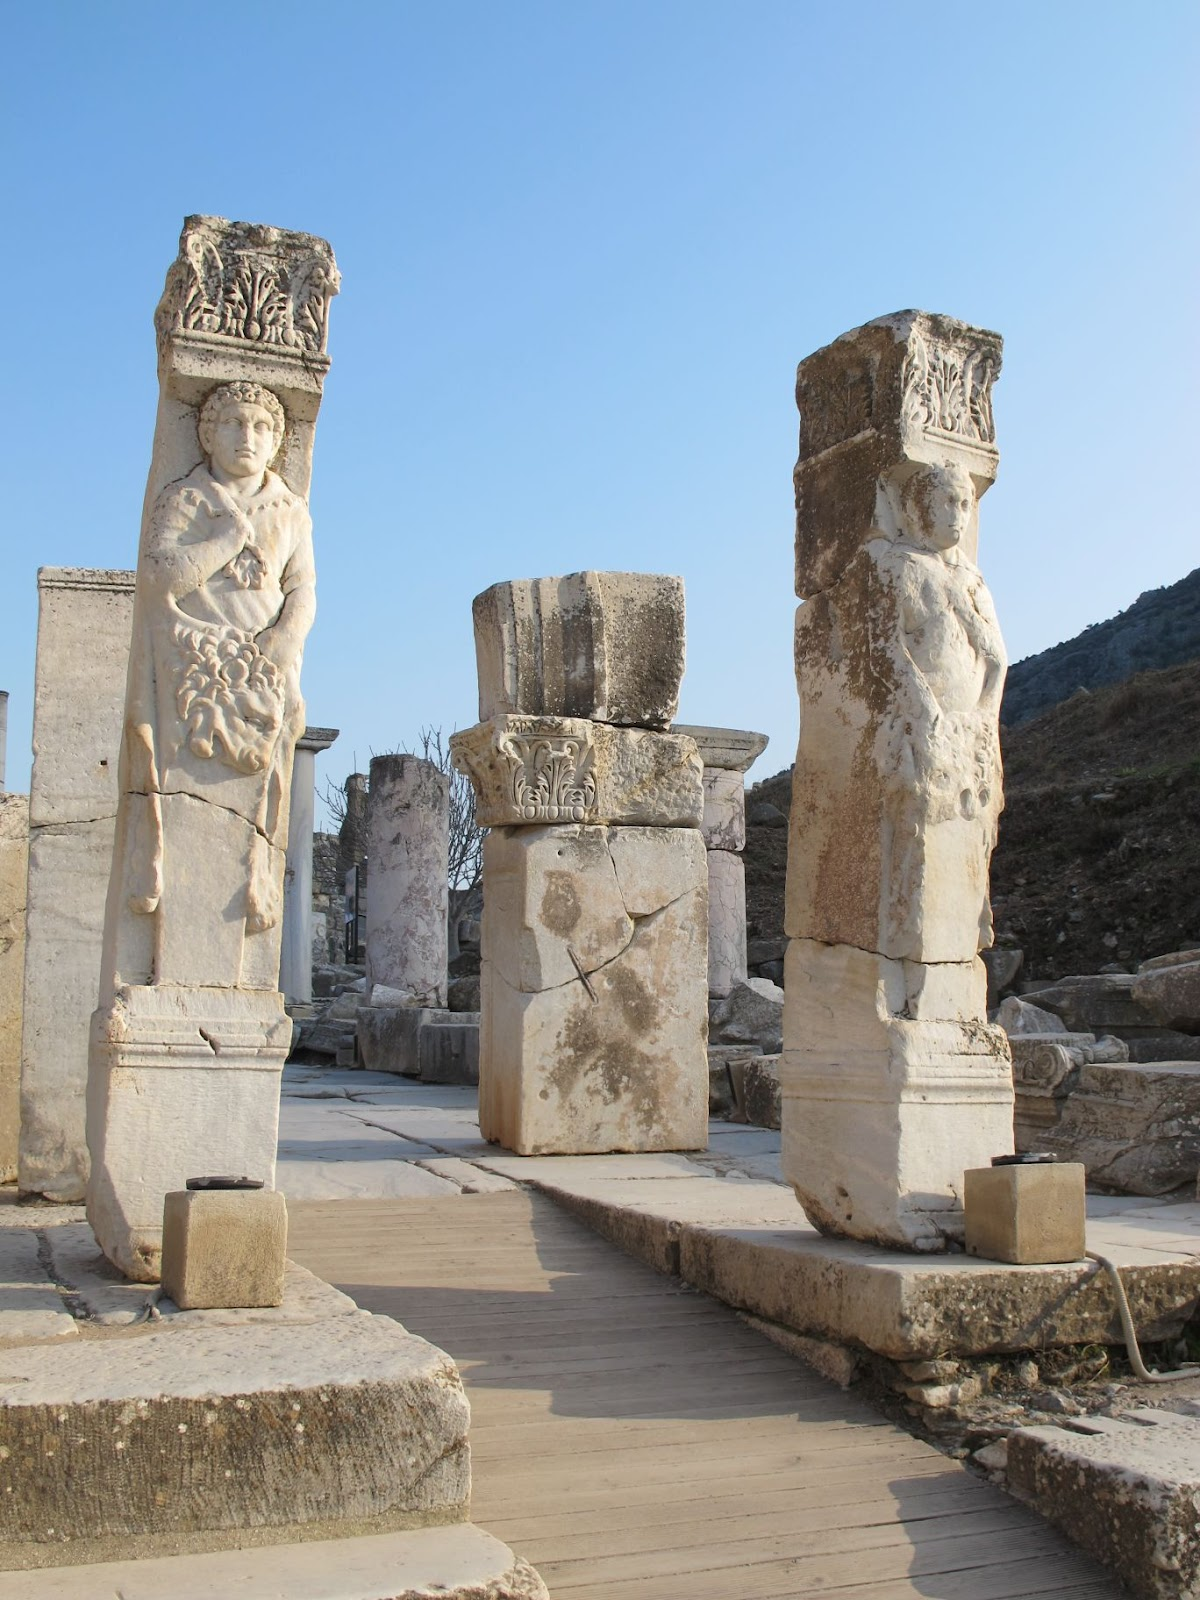 Heracles Gate, with statues of Heracles on each side, 4th c. AD. Éfeso 20